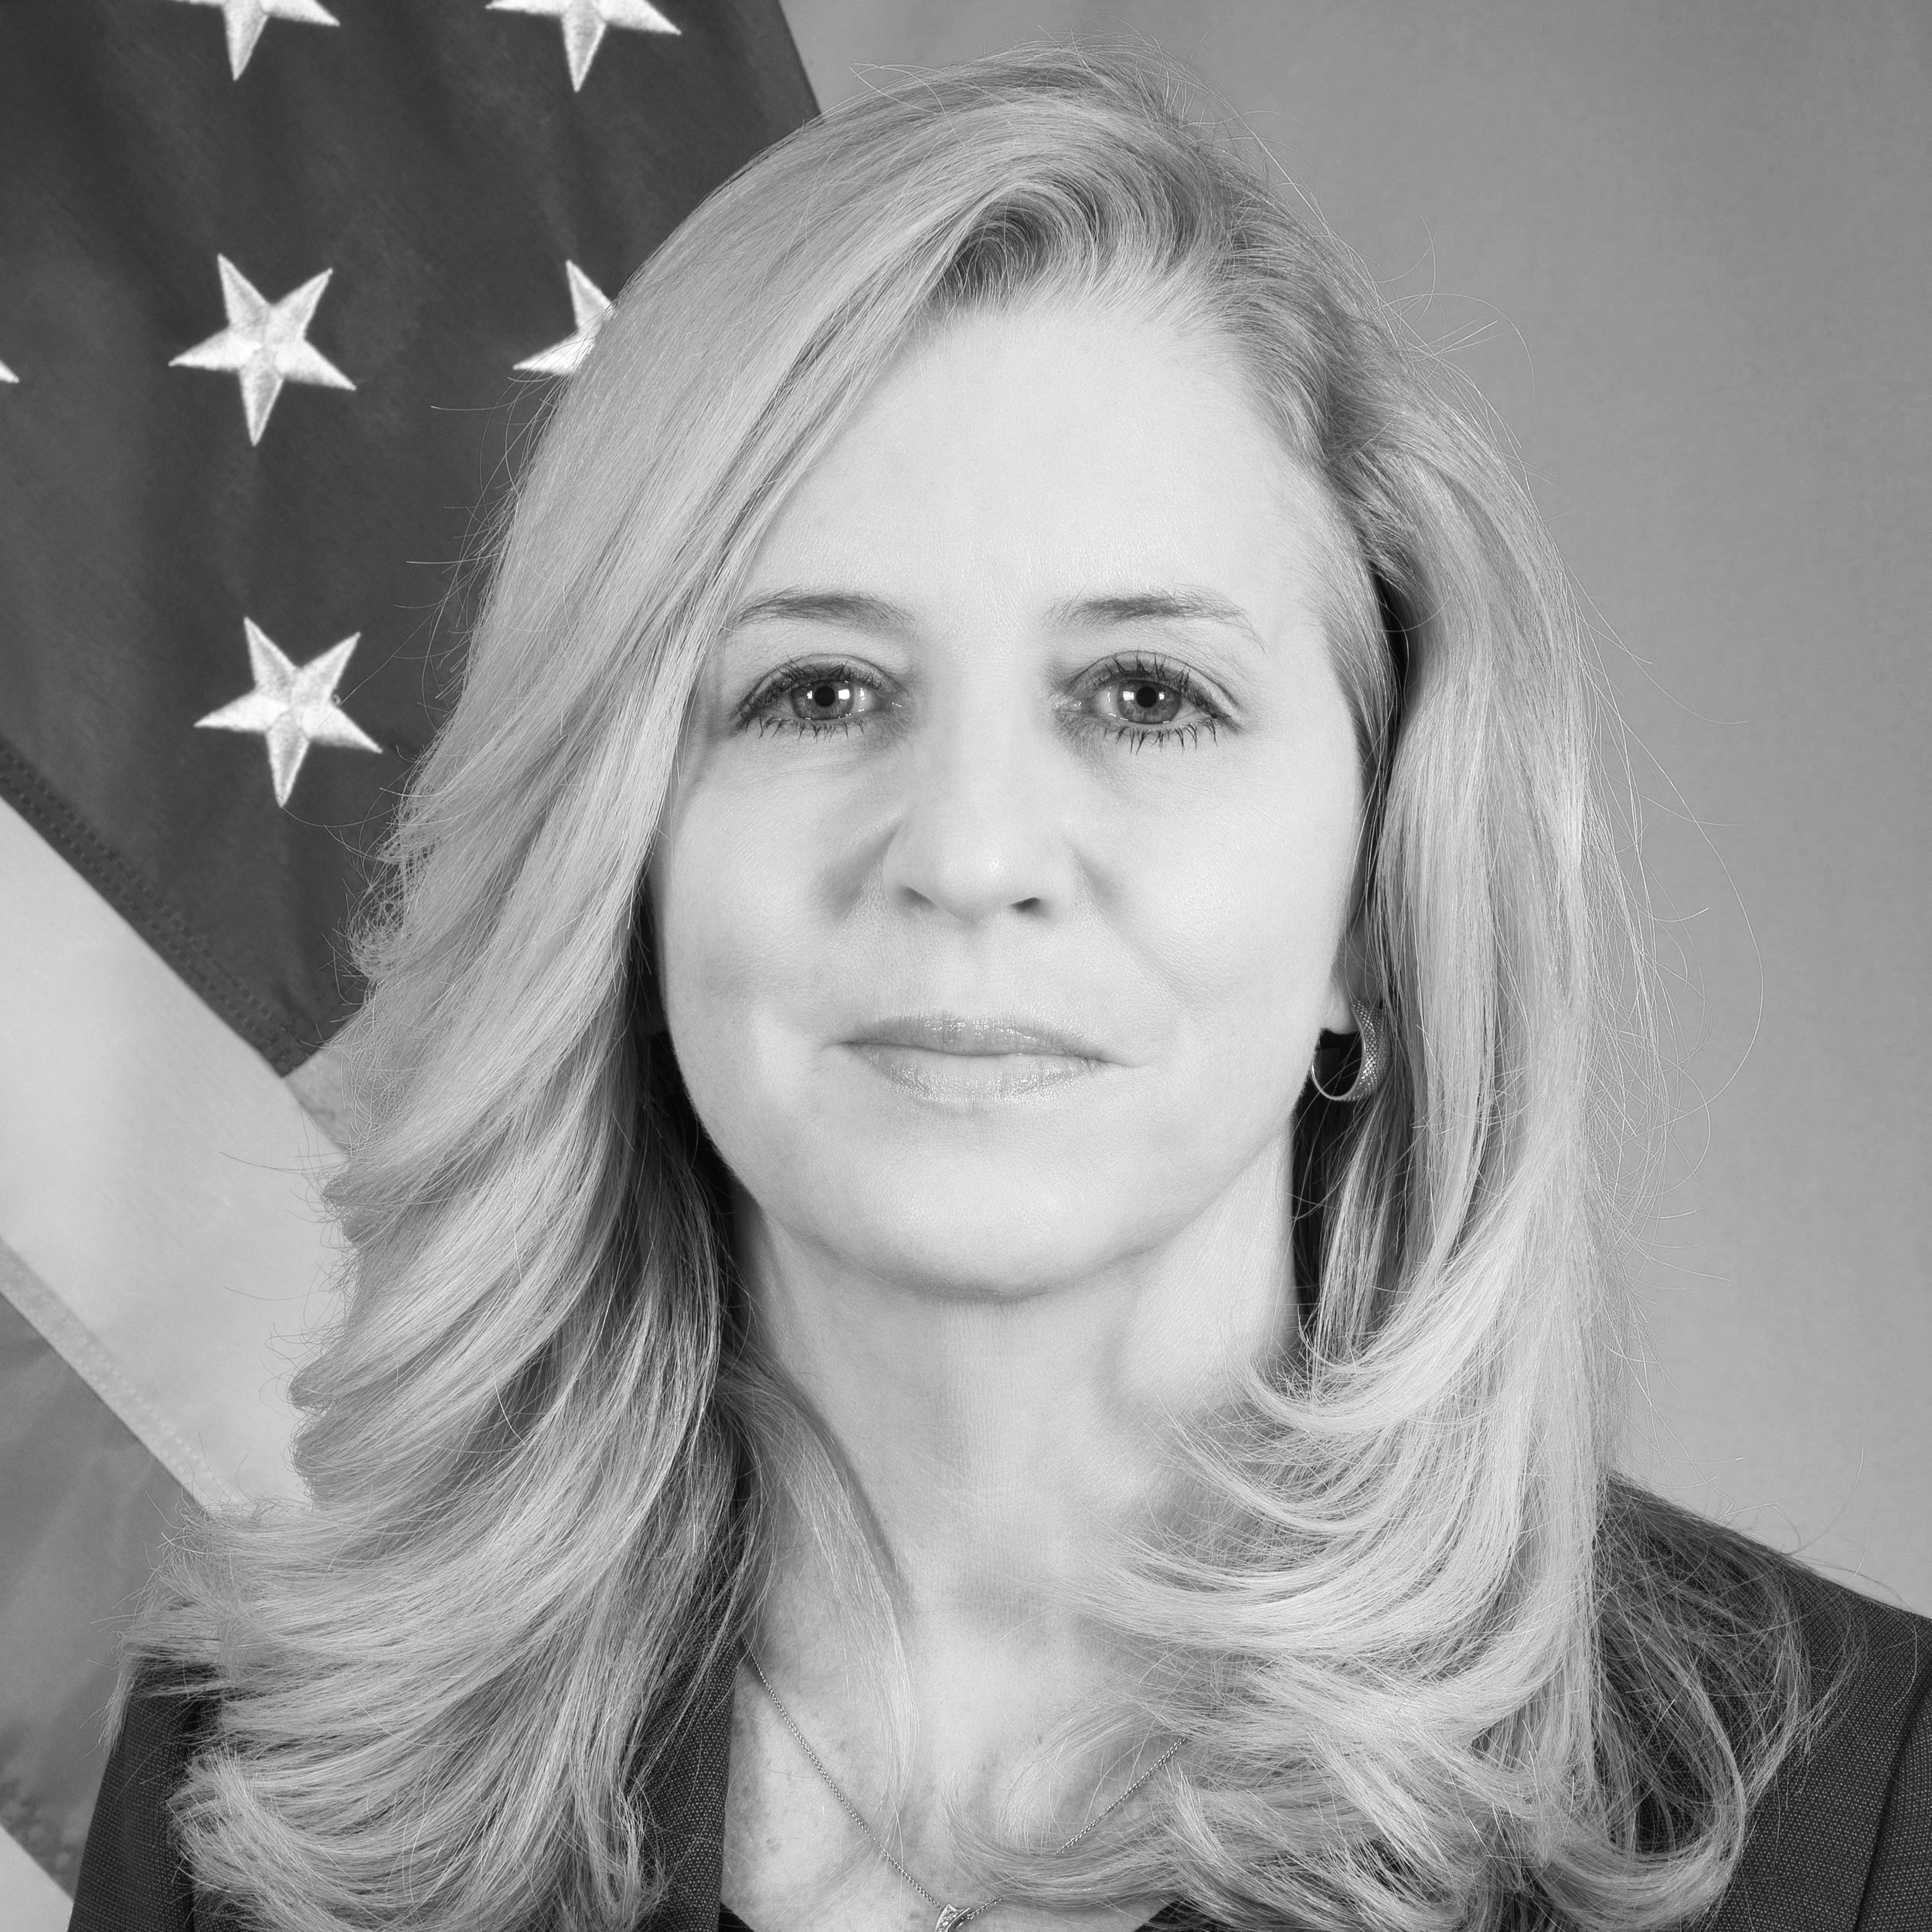 Ellen McCarthy, Assistant Secretary of State for the Bureau of Intelligence and Research   Ellen E. McCarthy was sworn in as the Assistant Secretary of State for the Bureau of Intelligence and Research on January 17, 2019. McCarthy returned to government service after three years in the private sector, where she served as President of Noblis NSP, leading its mission to serve clients in the Intelligence Community (IC). Before joining Noblis, from 2015 to 2018, she capped an over 25-year career in the IC serving as Chief Operating Officer of the National Geospatial-Intelligence Agency. From 2008 to 2012 she served as the President of the Intelligence and National Security Alliance (INSA), which supports government policy and programs relating to cyber security, counter intelligence, acquisition, and homeland security.  From 2004 to 2008, McCarthy was the Director of the Human Capital Management Office and the Acting Director of Security in the Office of the Under Secretary of Defense for Intelligence. At DoD, she focused on policy development and strategy relating to intelligence reform, resource management, acquisitions, collection authorities, and personnel. McCarthy also served the Director of Intelligence Operations, Strategy, and Policy for the United States Coast Guard (USCG) and played a critical role in moving the USCG intelligence program into the IC, establishing Maritime Intelligence Fusion Centers, expanding USCG attaché presence worldwide, and establishing new intelligence and law enforcement collection capabilities.  McCarthy started her government career as an all-source intelligence analyst at the Office of Naval Intelligence and at Atlantic Fleet. Before joining the IC, she served as a technical research analyst at the Institute for Defense Analysis supporting the Strategic Defense Initiative Organization. McCarthy is a graduate of the University of South Carolina and holds a master's in public policy from the University of Maryland.